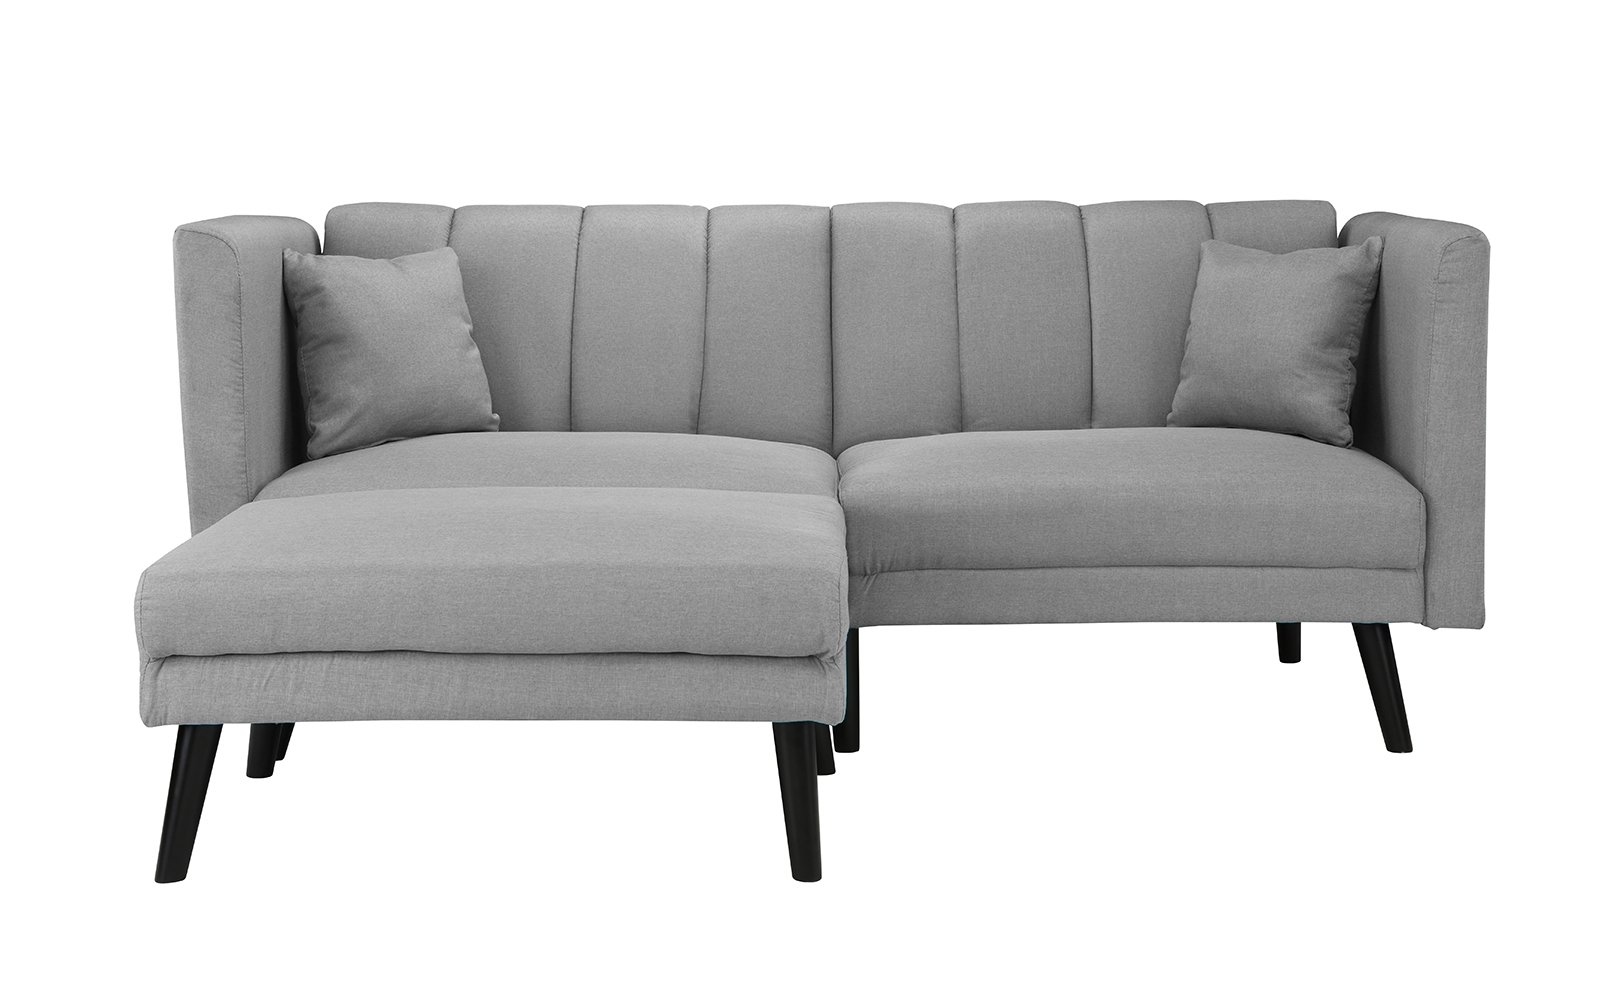 Details about Mid-Century Modern Linen Futon Sofa Bed, Classic Living Room  Couch, Light Grey